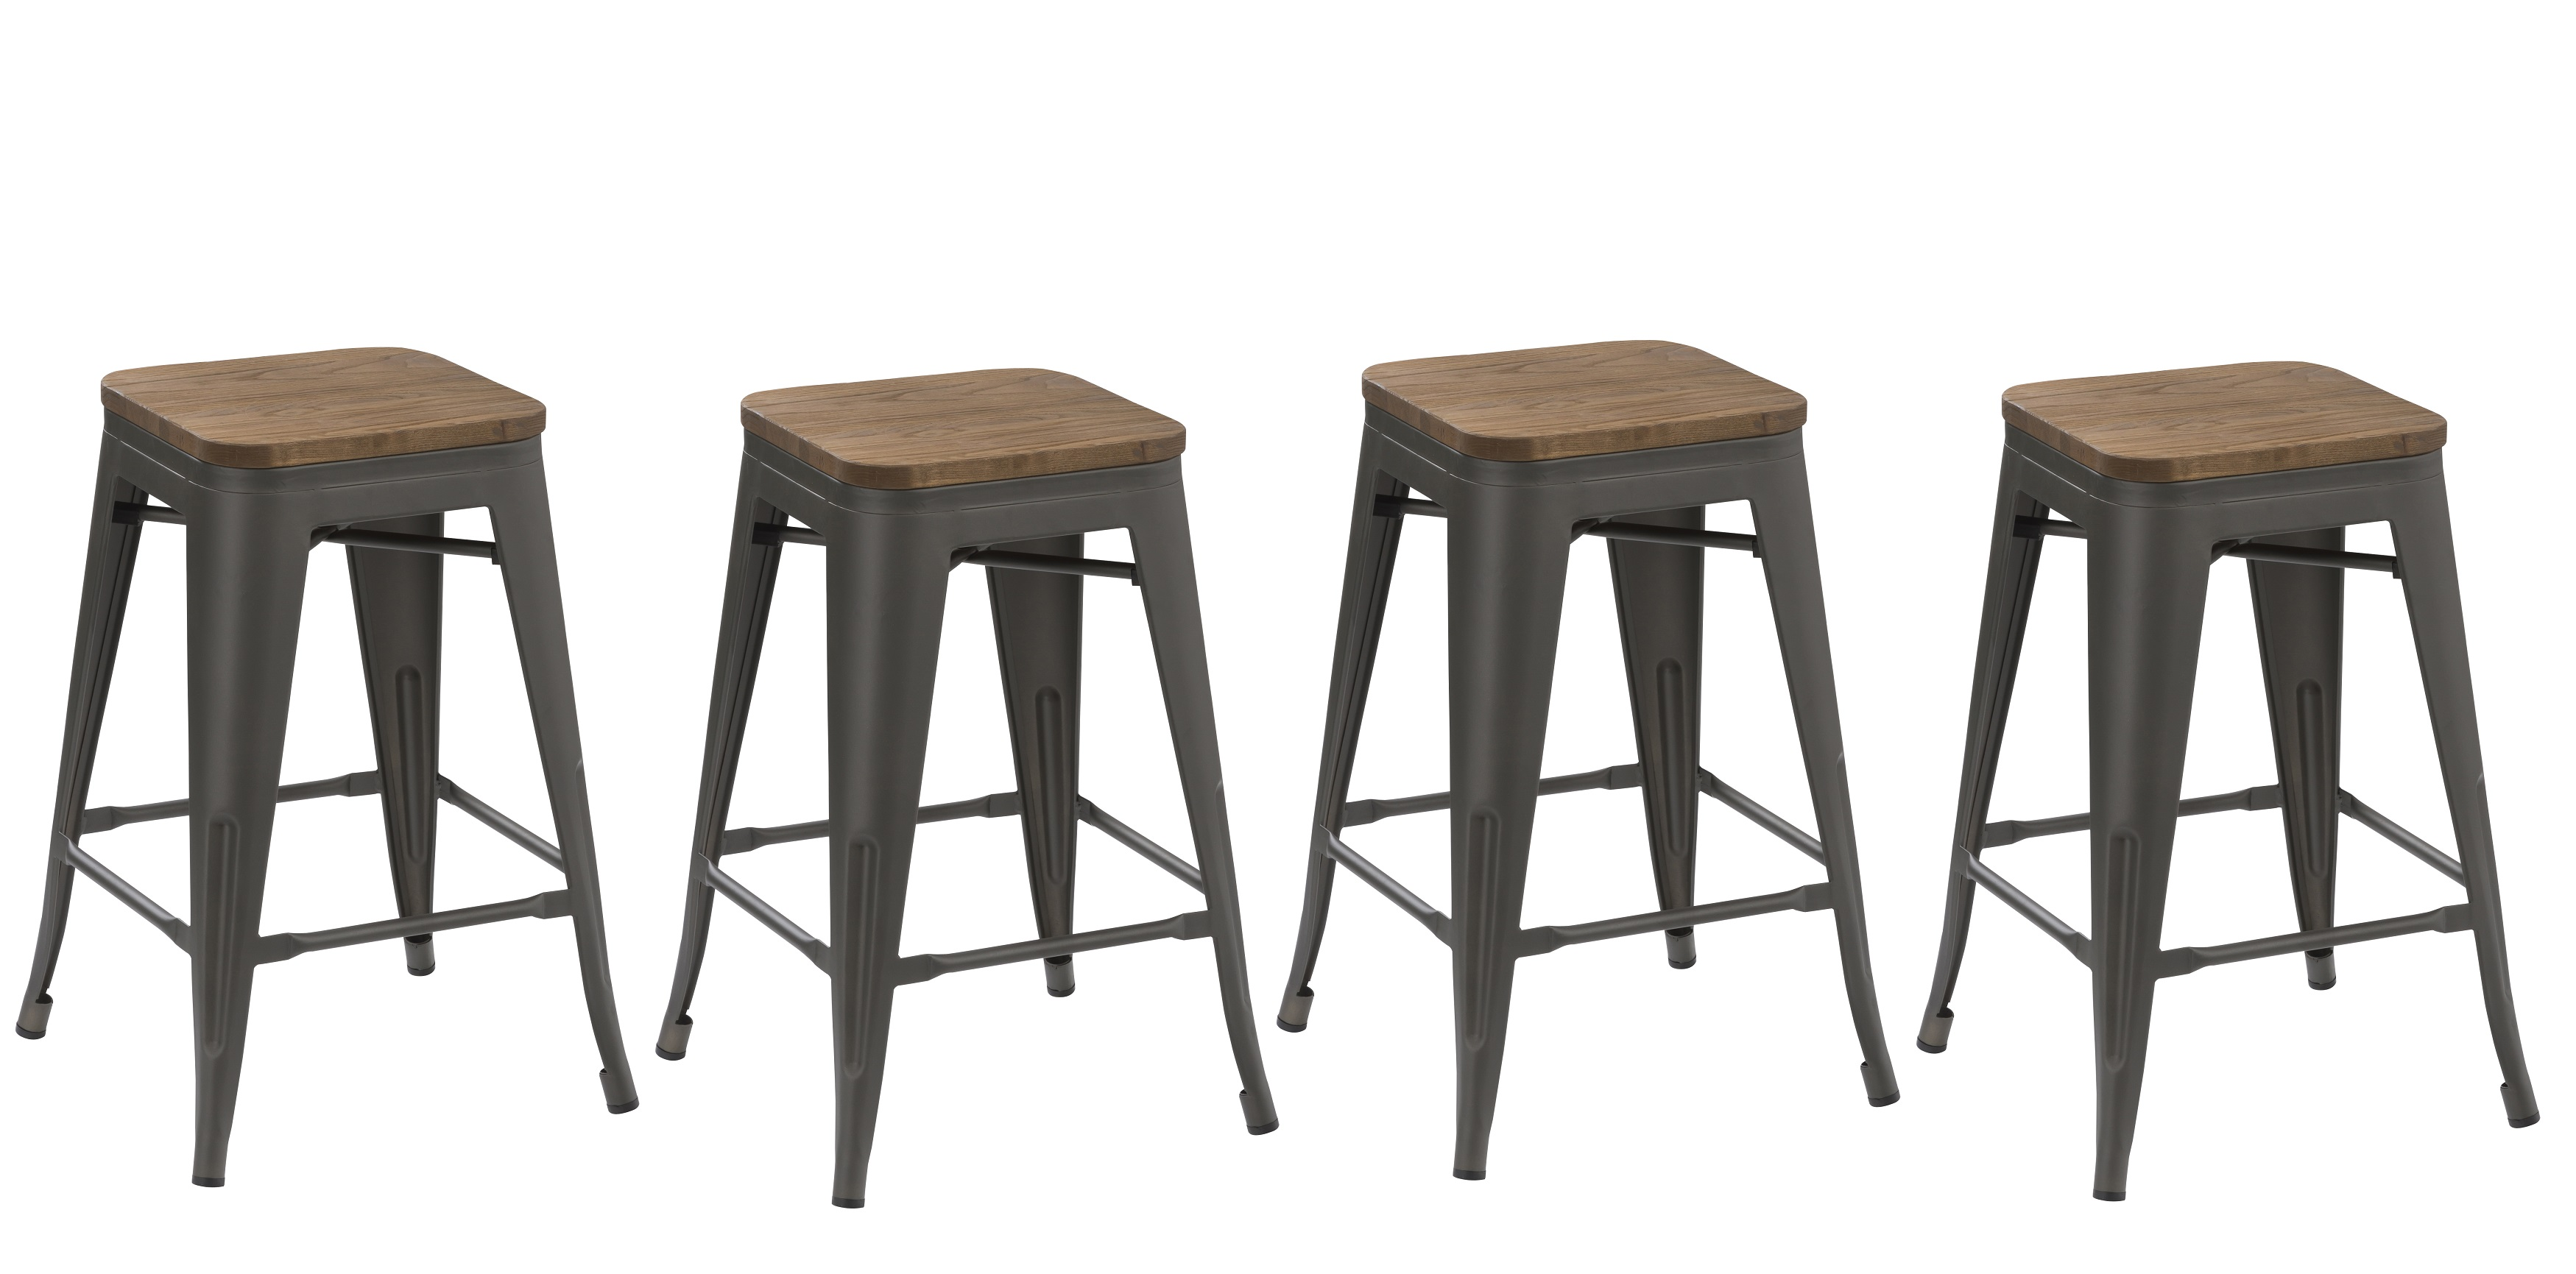 Strange Btexpert 24 Inch Industrial Metal Antique Gunmetal Counter Bar Stool Matte Handmade Wood Seat Set Of 4 Barstool Pdpeps Interior Chair Design Pdpepsorg